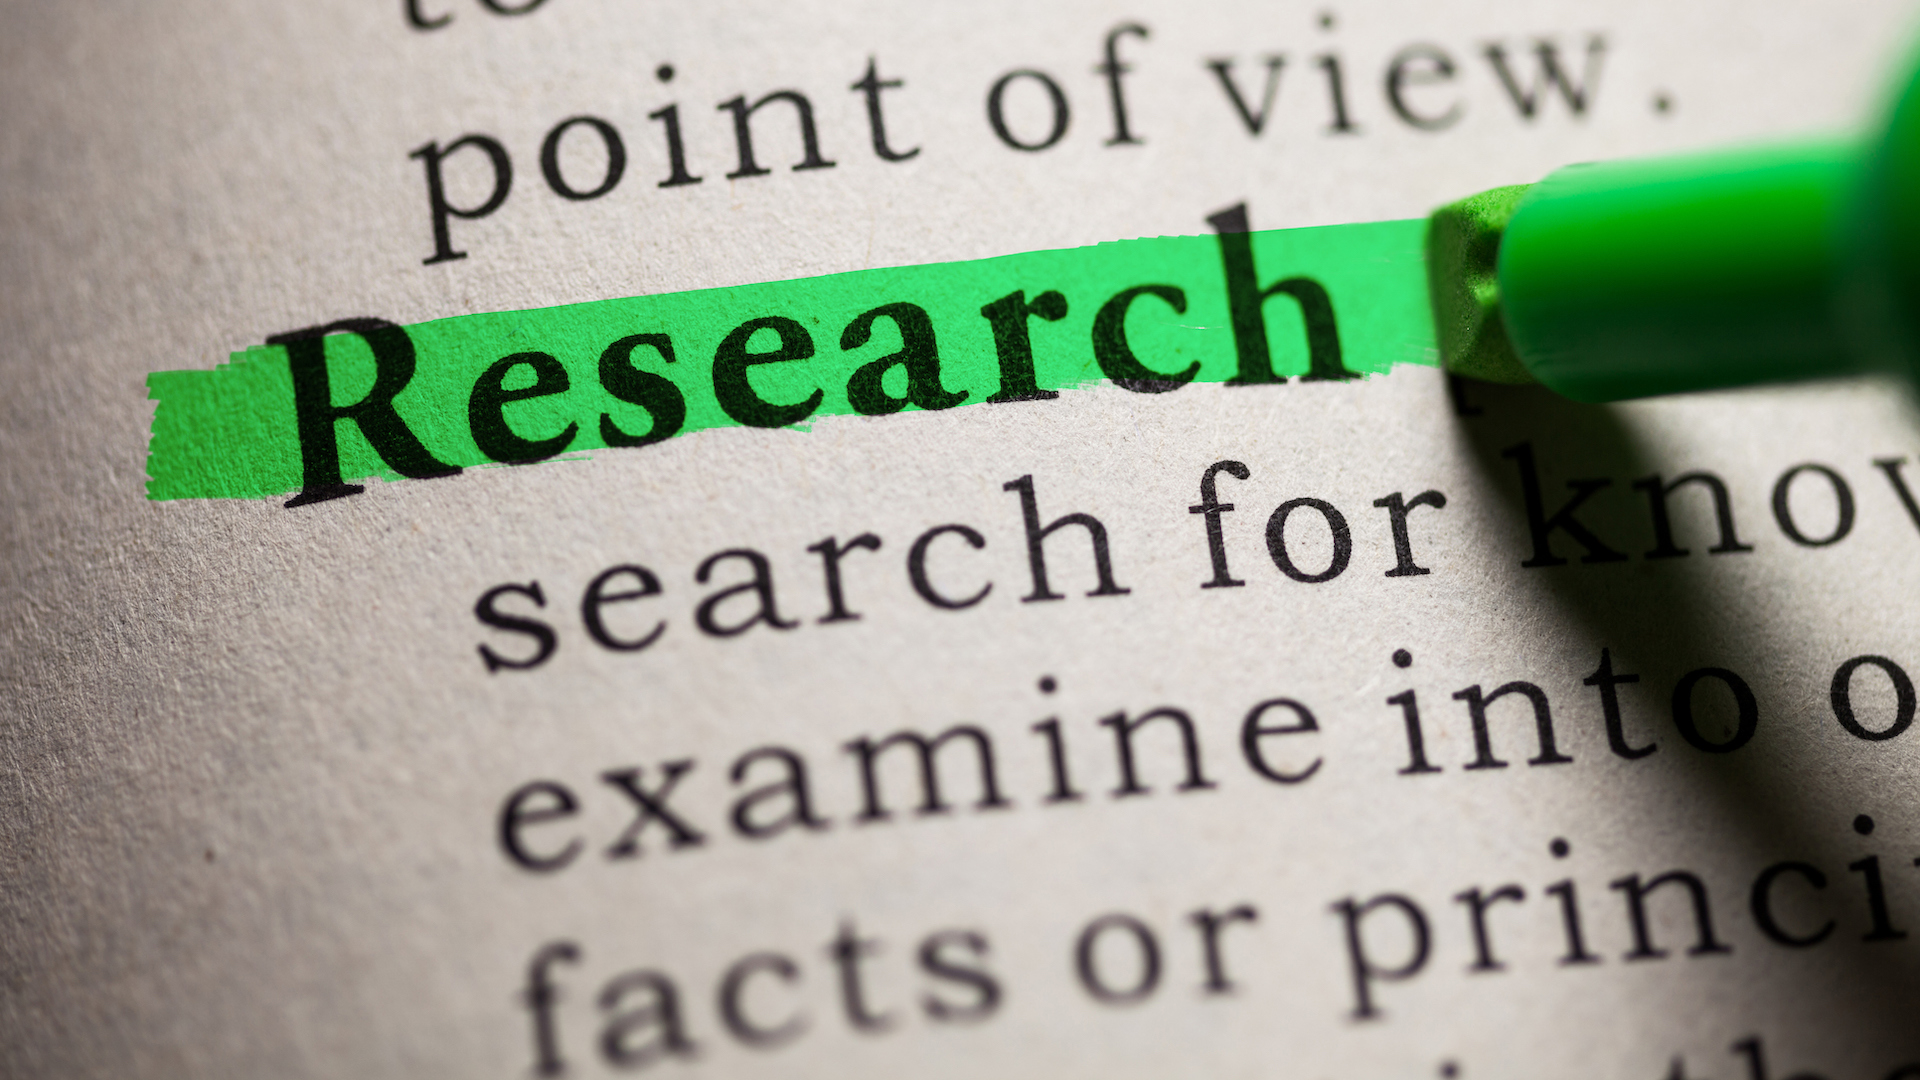 Neglected Areas of Research: What Study Would You Have Done with Unlimited Resources?